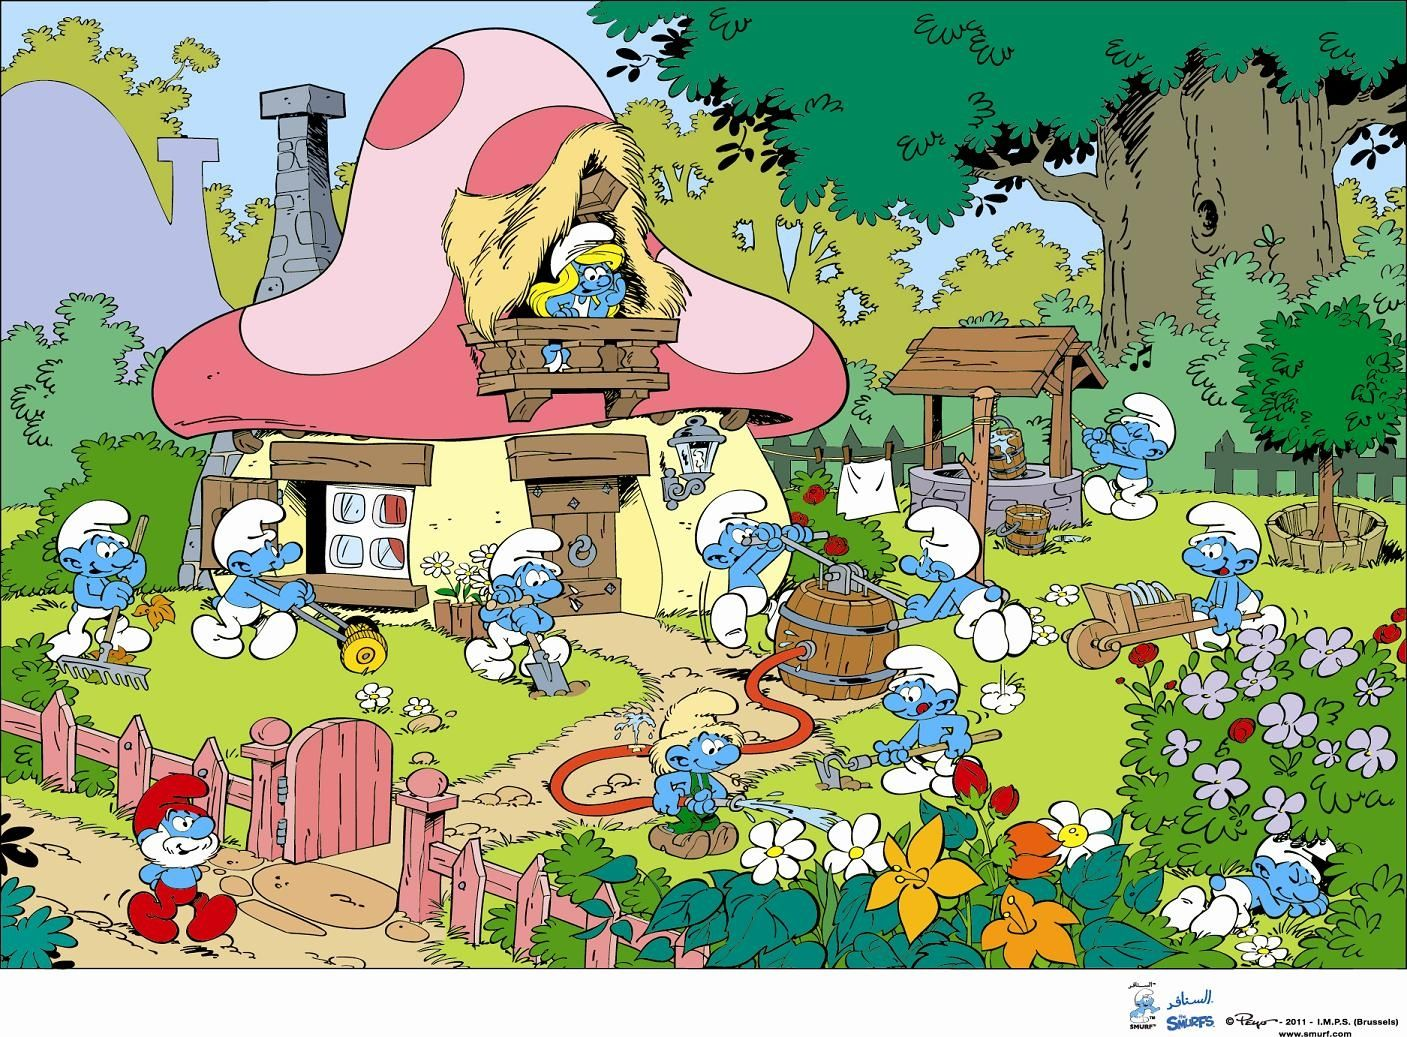 dd5d32ac03db6ea2c9aa0fc3cc725b39 - How To Get More Wood And Stone In Smurfs Village